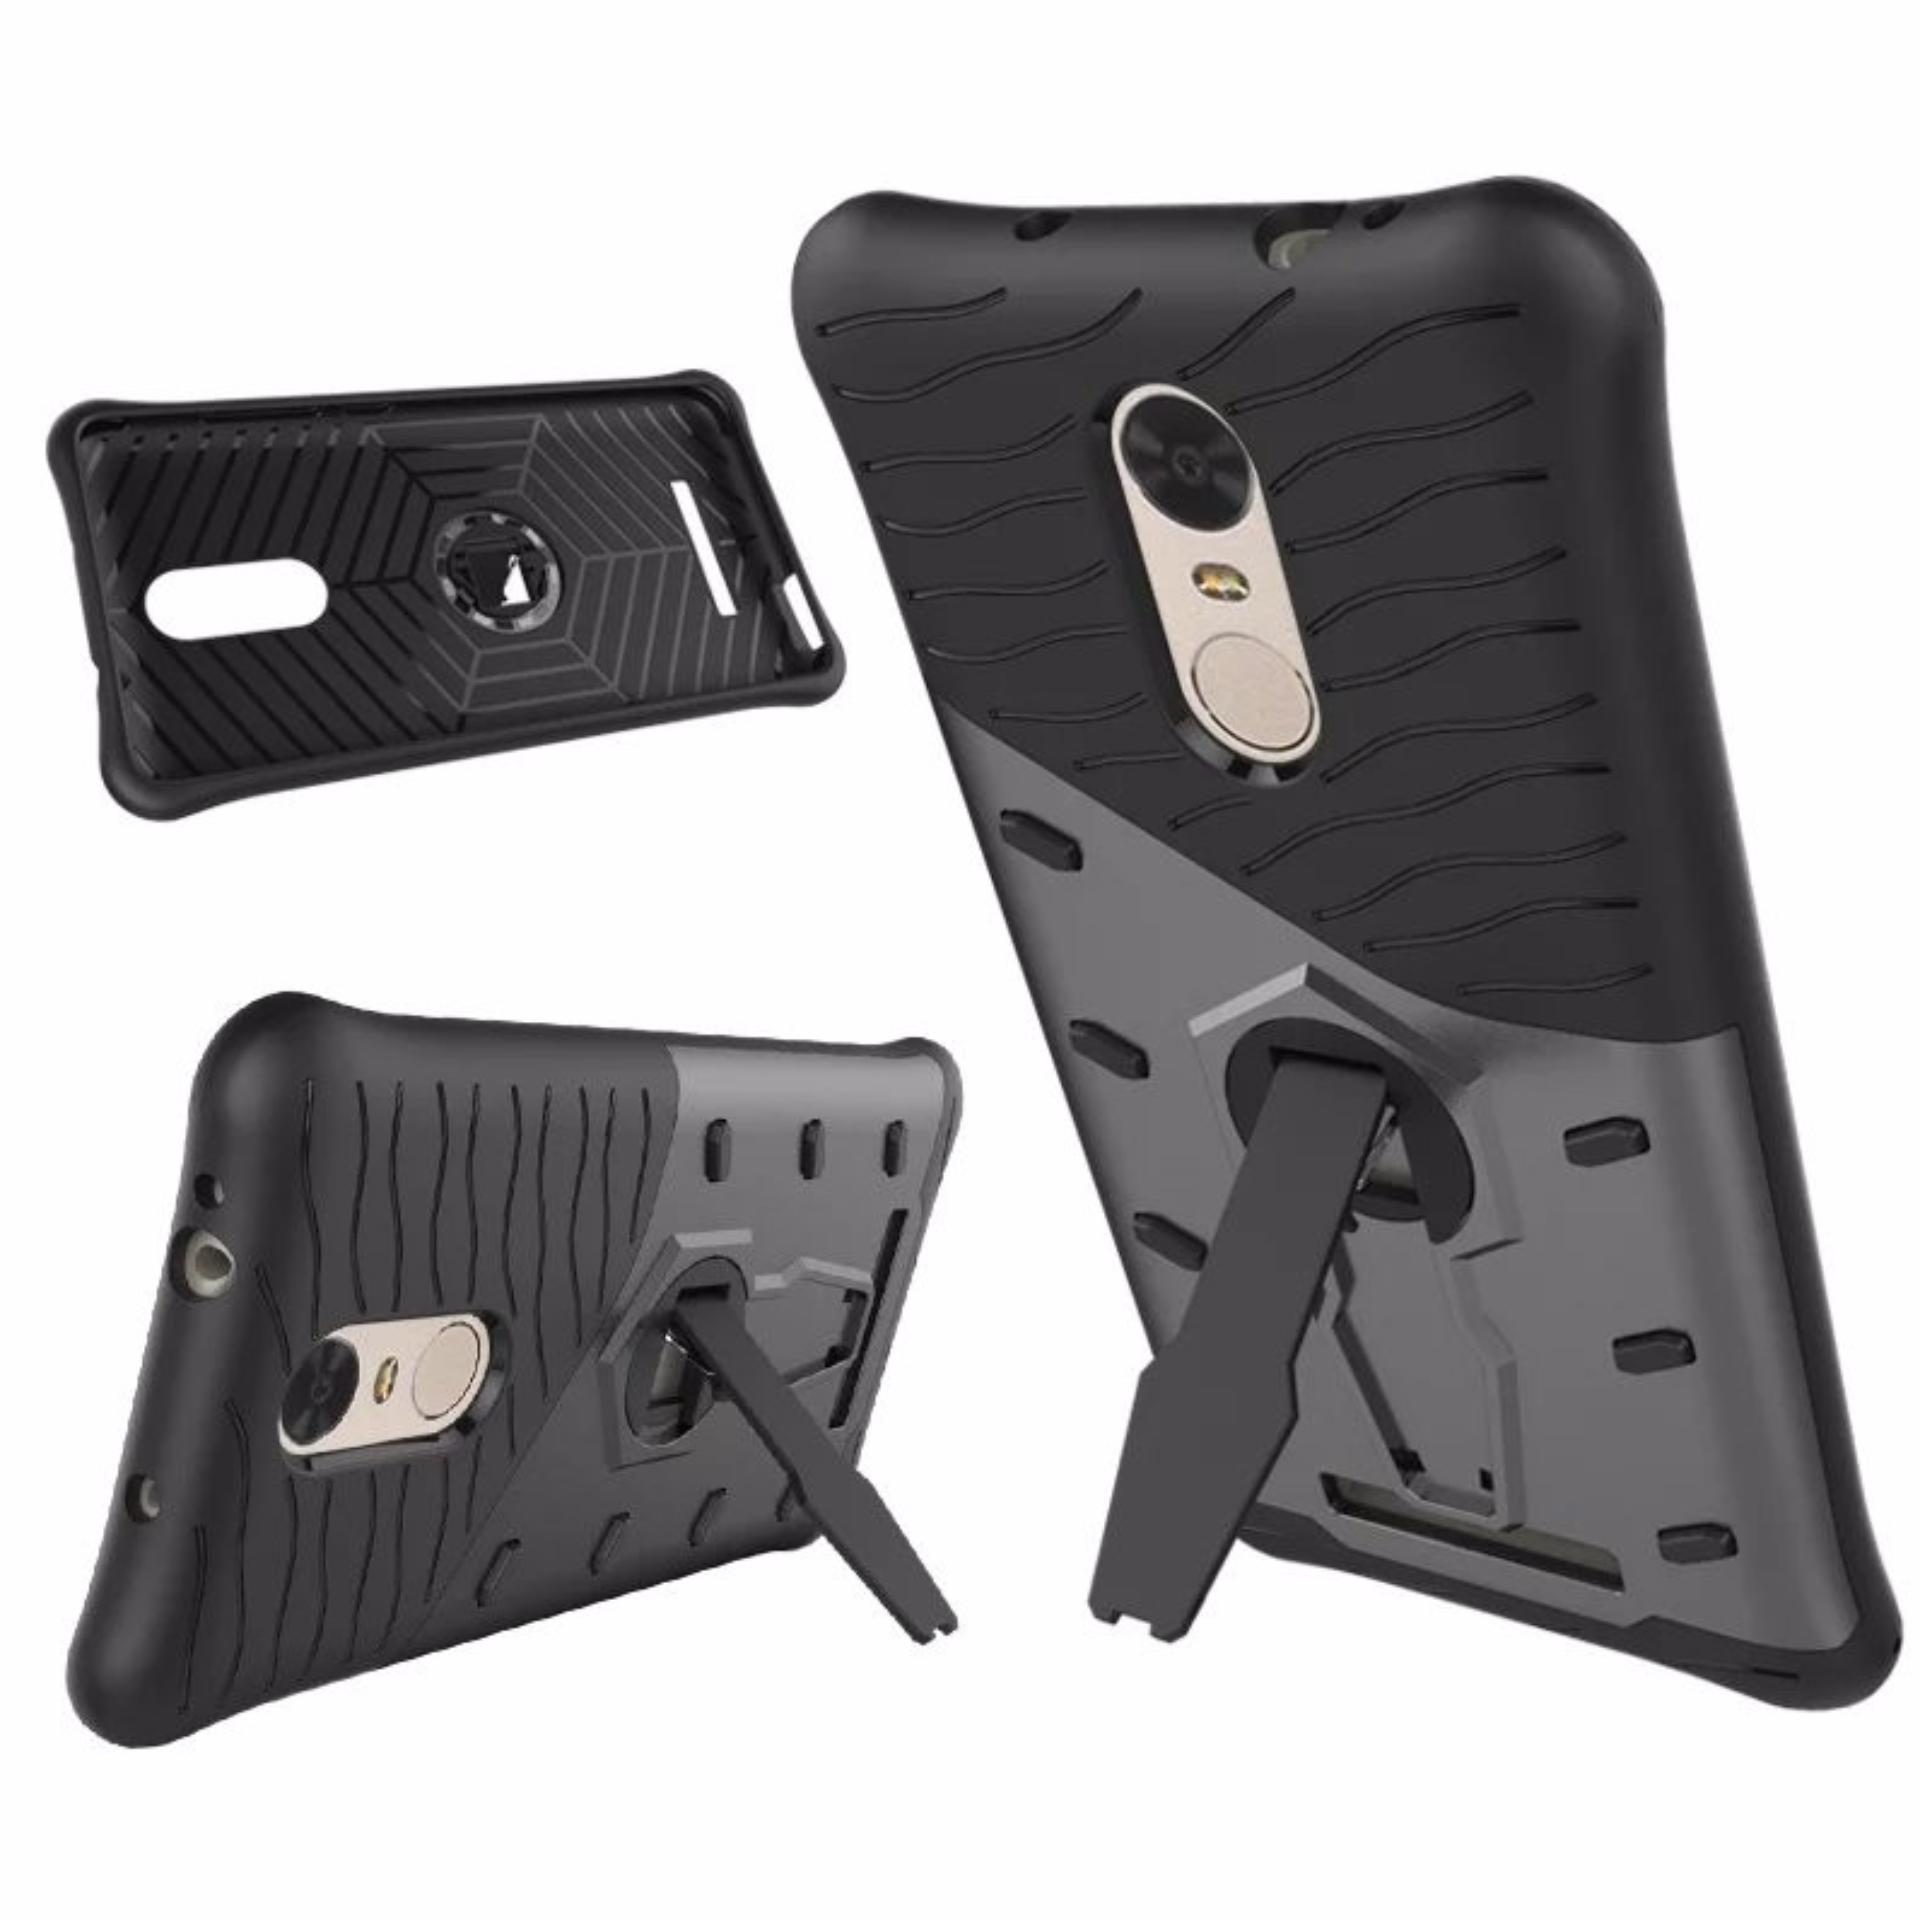 Flash Sale iCase Sniper Armor Xiaomi Redmi 3 Pro Dual Layered TPU+PC Hybrid Back